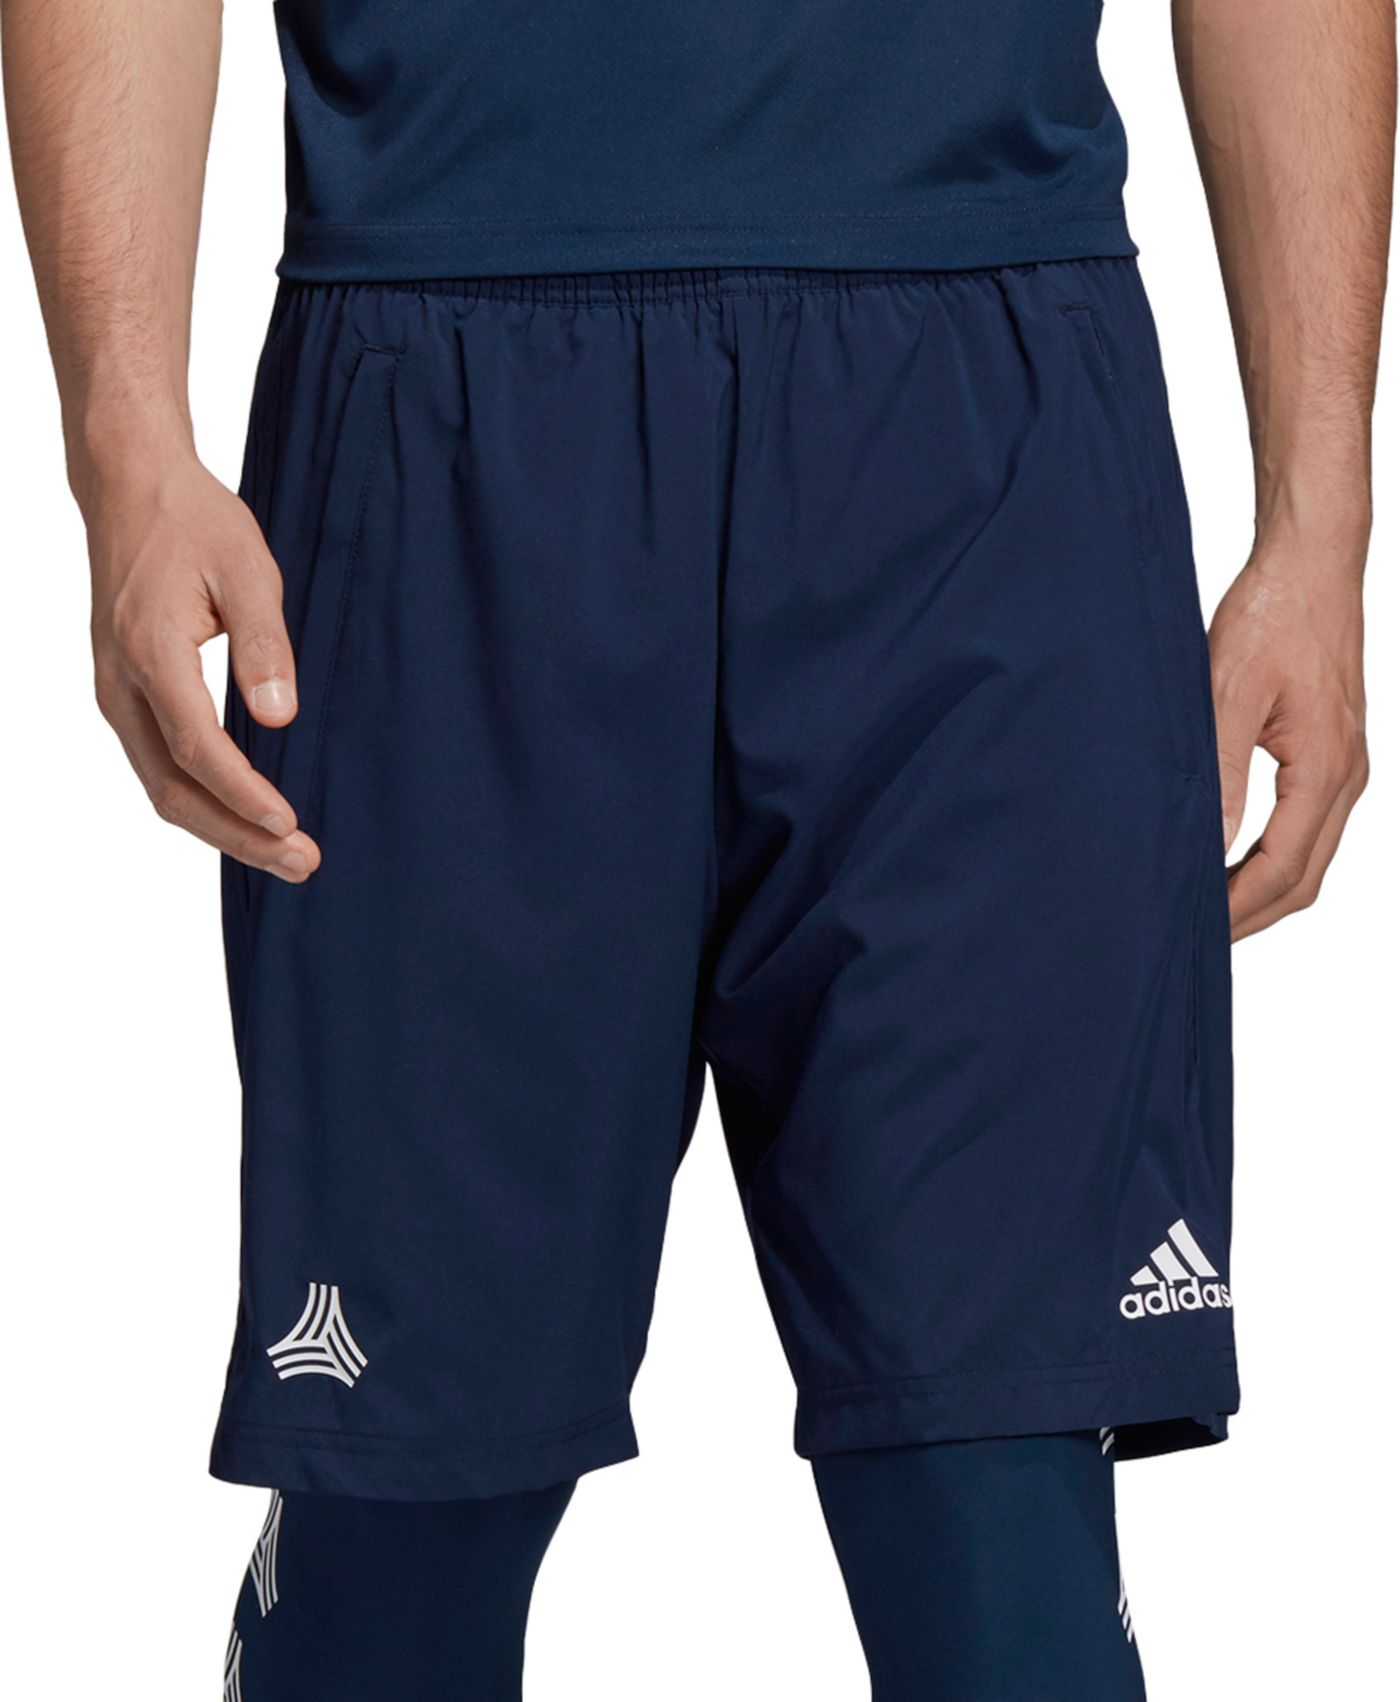 adidas Men's Soccer Training Shants